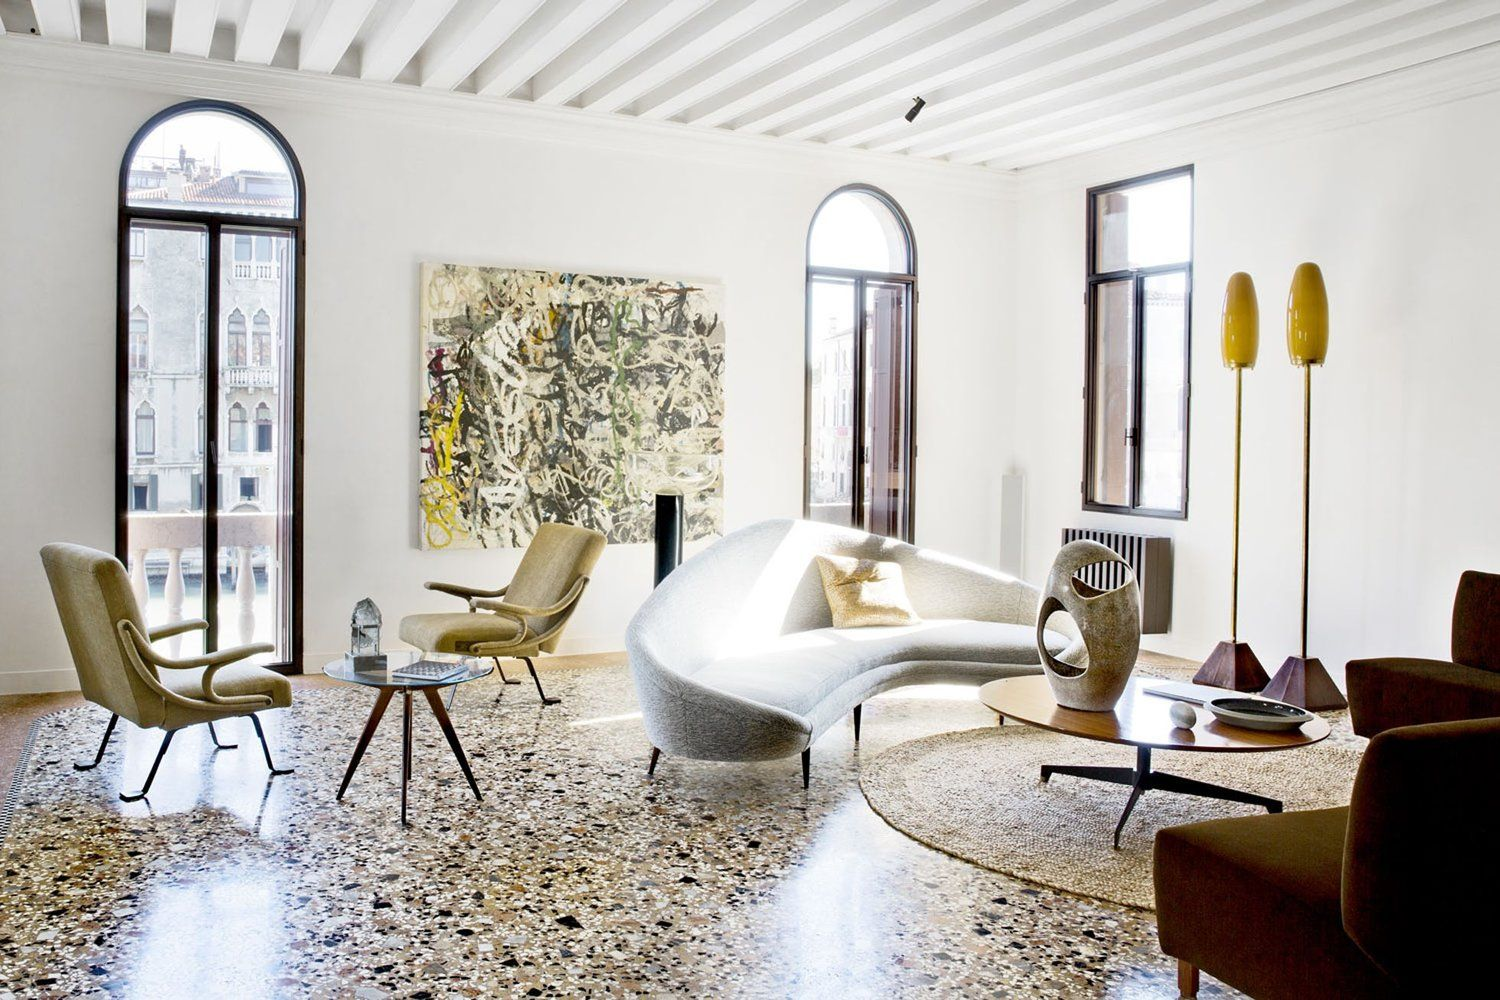 A Paris Living Room With Terrazzo Floors Image Credit Chiara Dal Canto Living Inside Bo Bedre In 2020 Paris Living Rooms Tile Floor Living Room Terrazzo